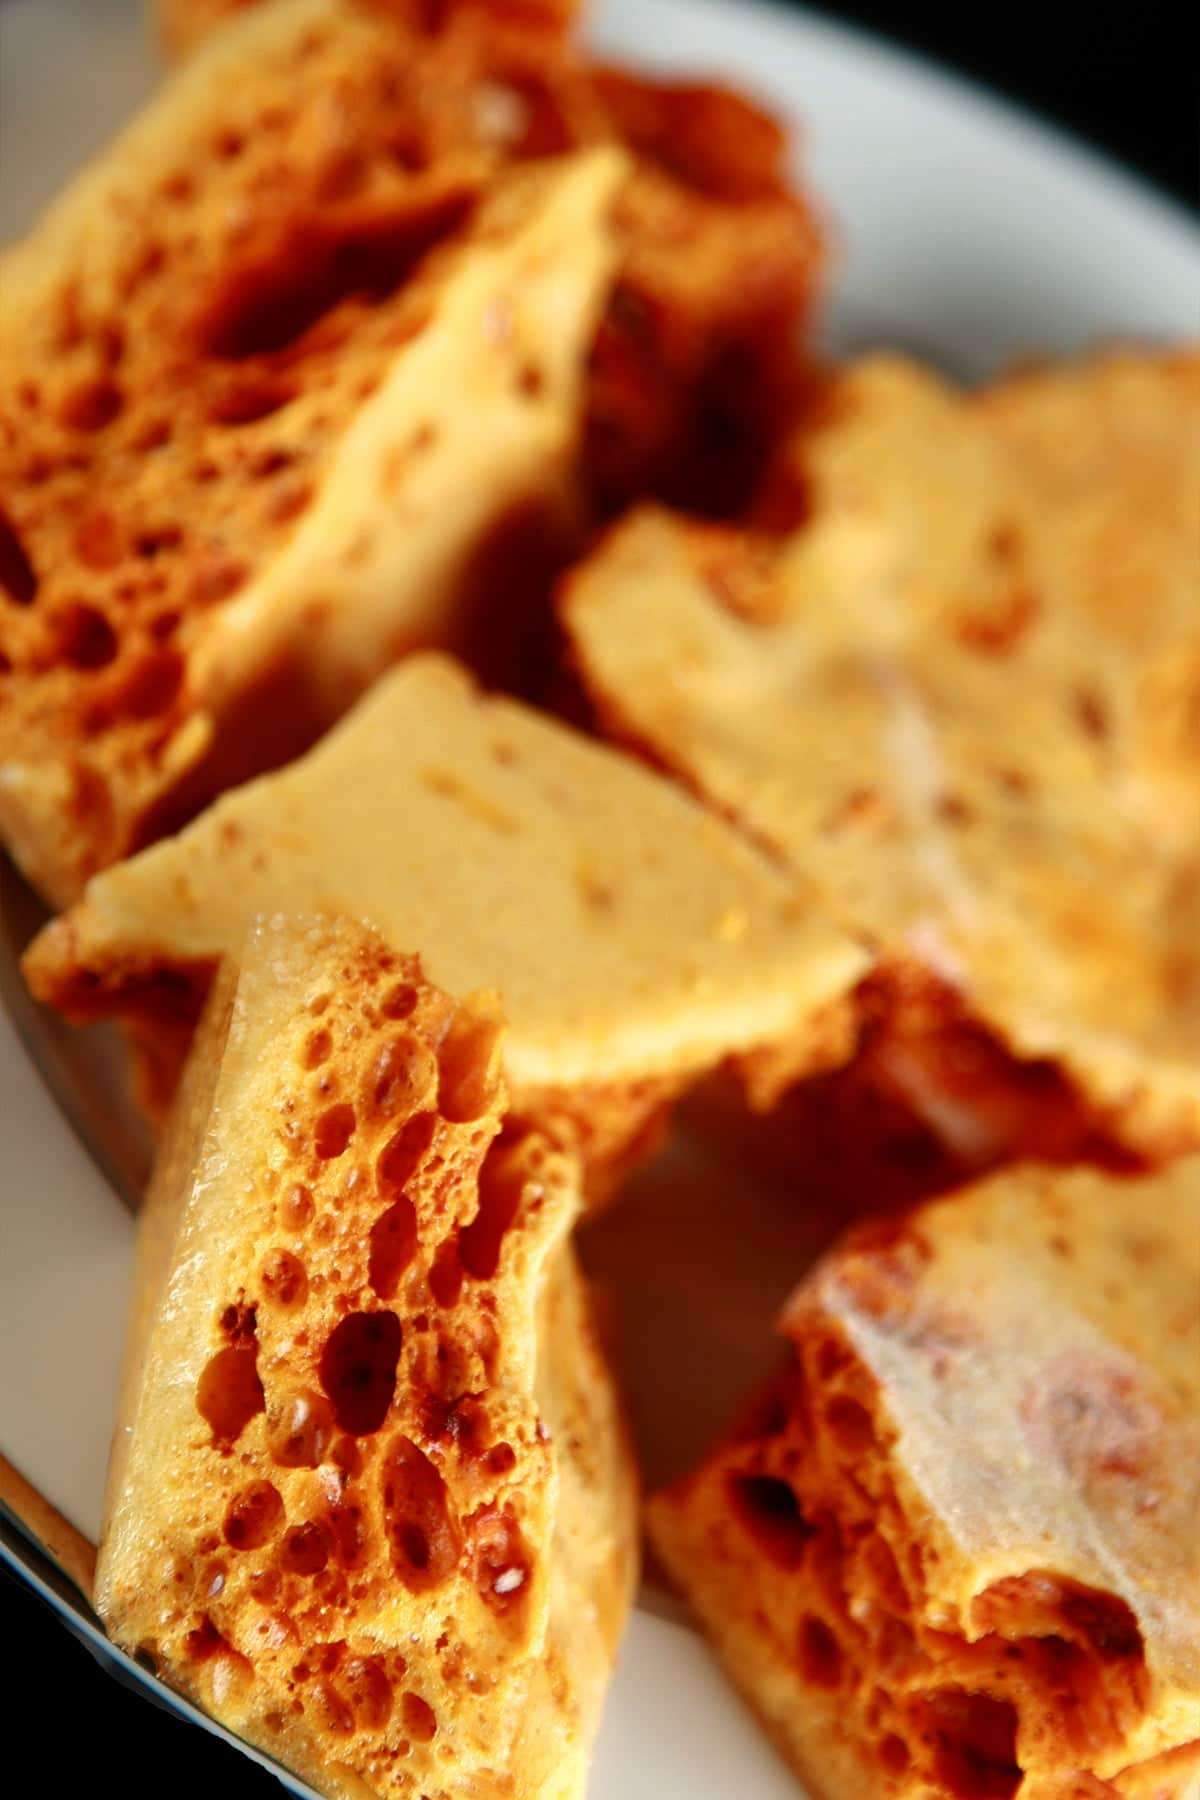 Close up view of a plate of golden sponge toffee chunks.